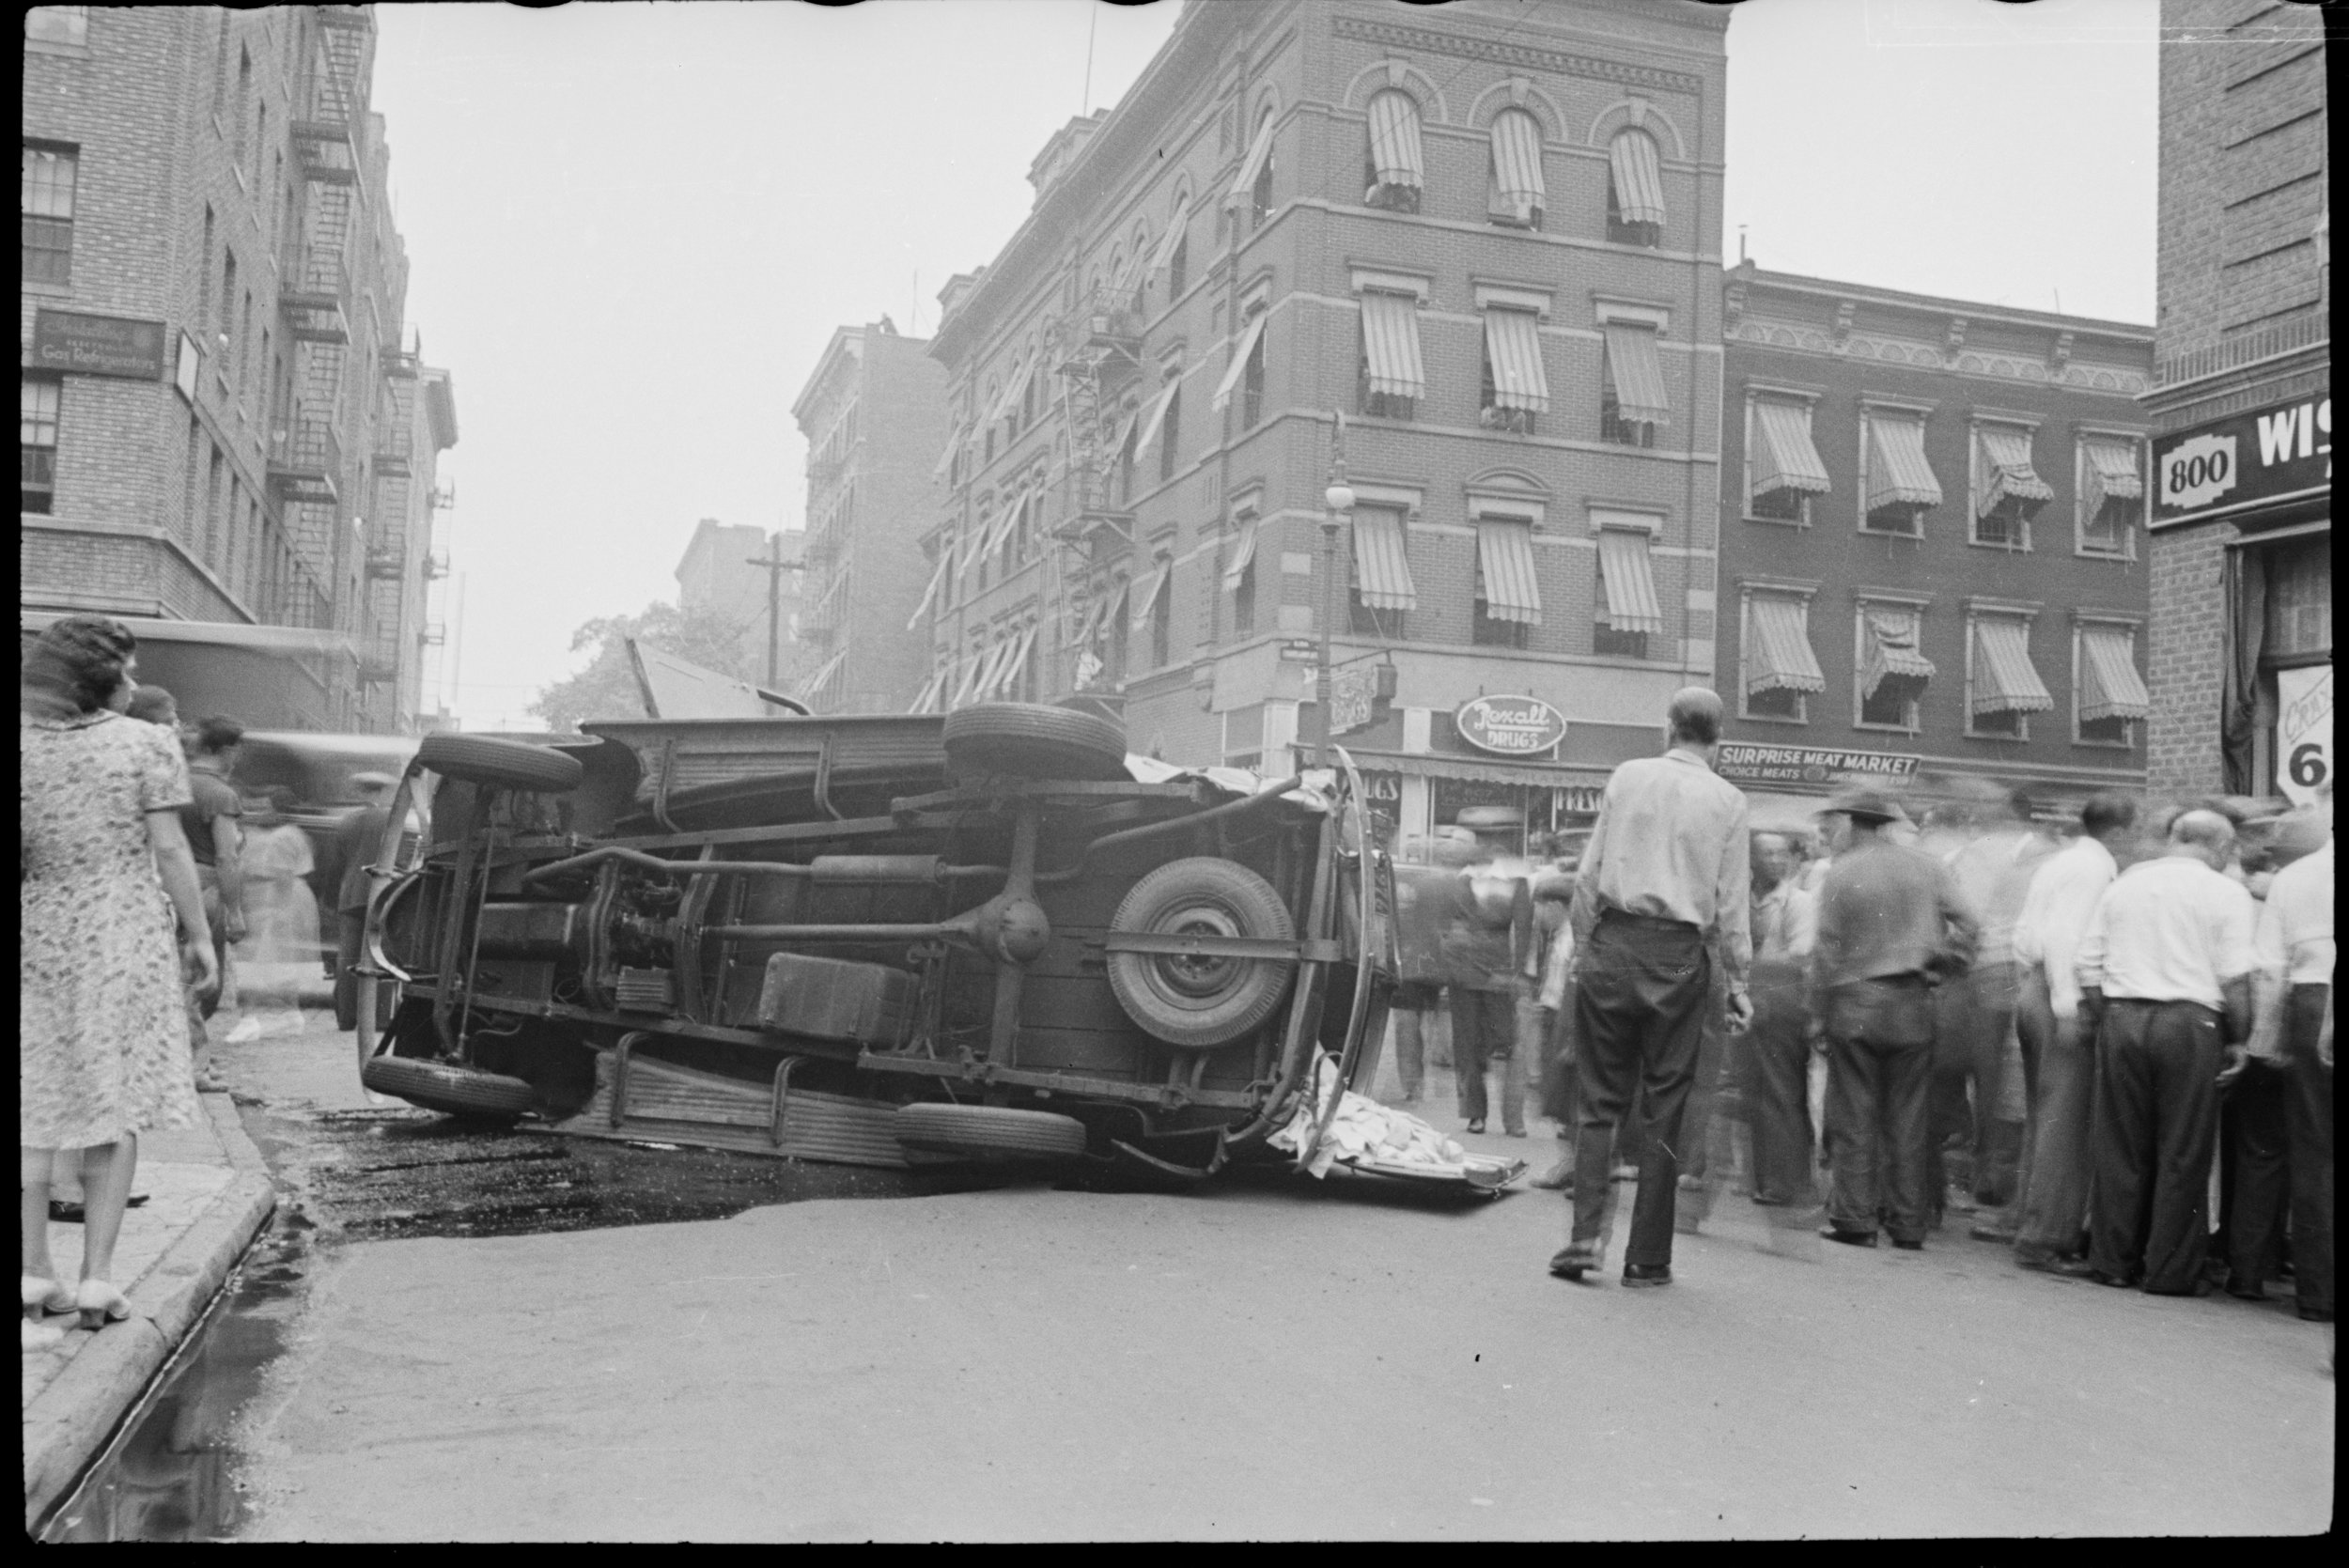 An accident scene in the Bronx captured by an anonymous Tax Photo photographer, ca. 1940.